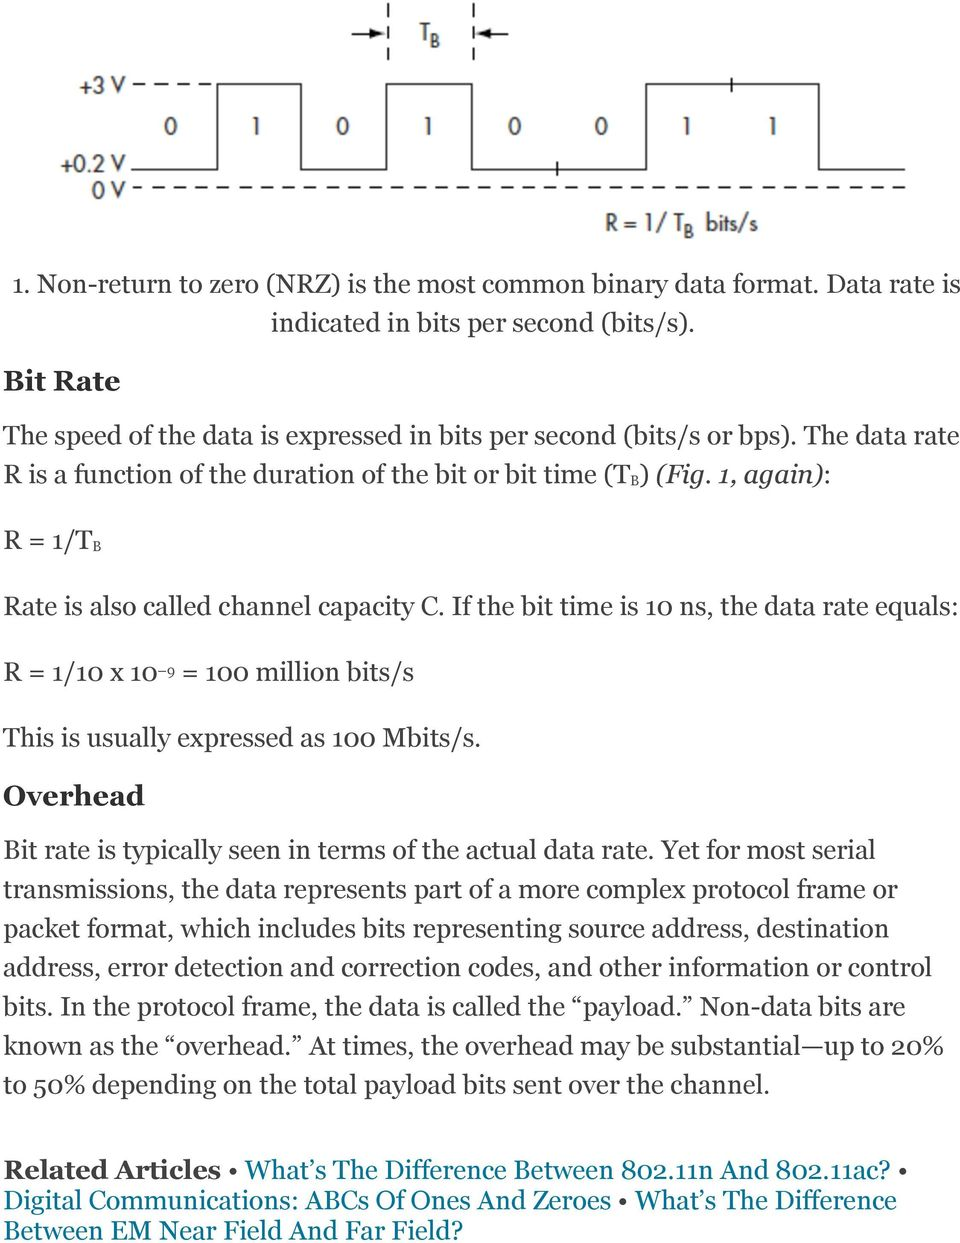 If the bit time is 10 ns, the data rate equals: R = 1/10 x 10 9 = 100 million bits/s This is usually expressed as 100 Mbits/s. Overhead Bit rate is typically seen in terms of the actual data rate.